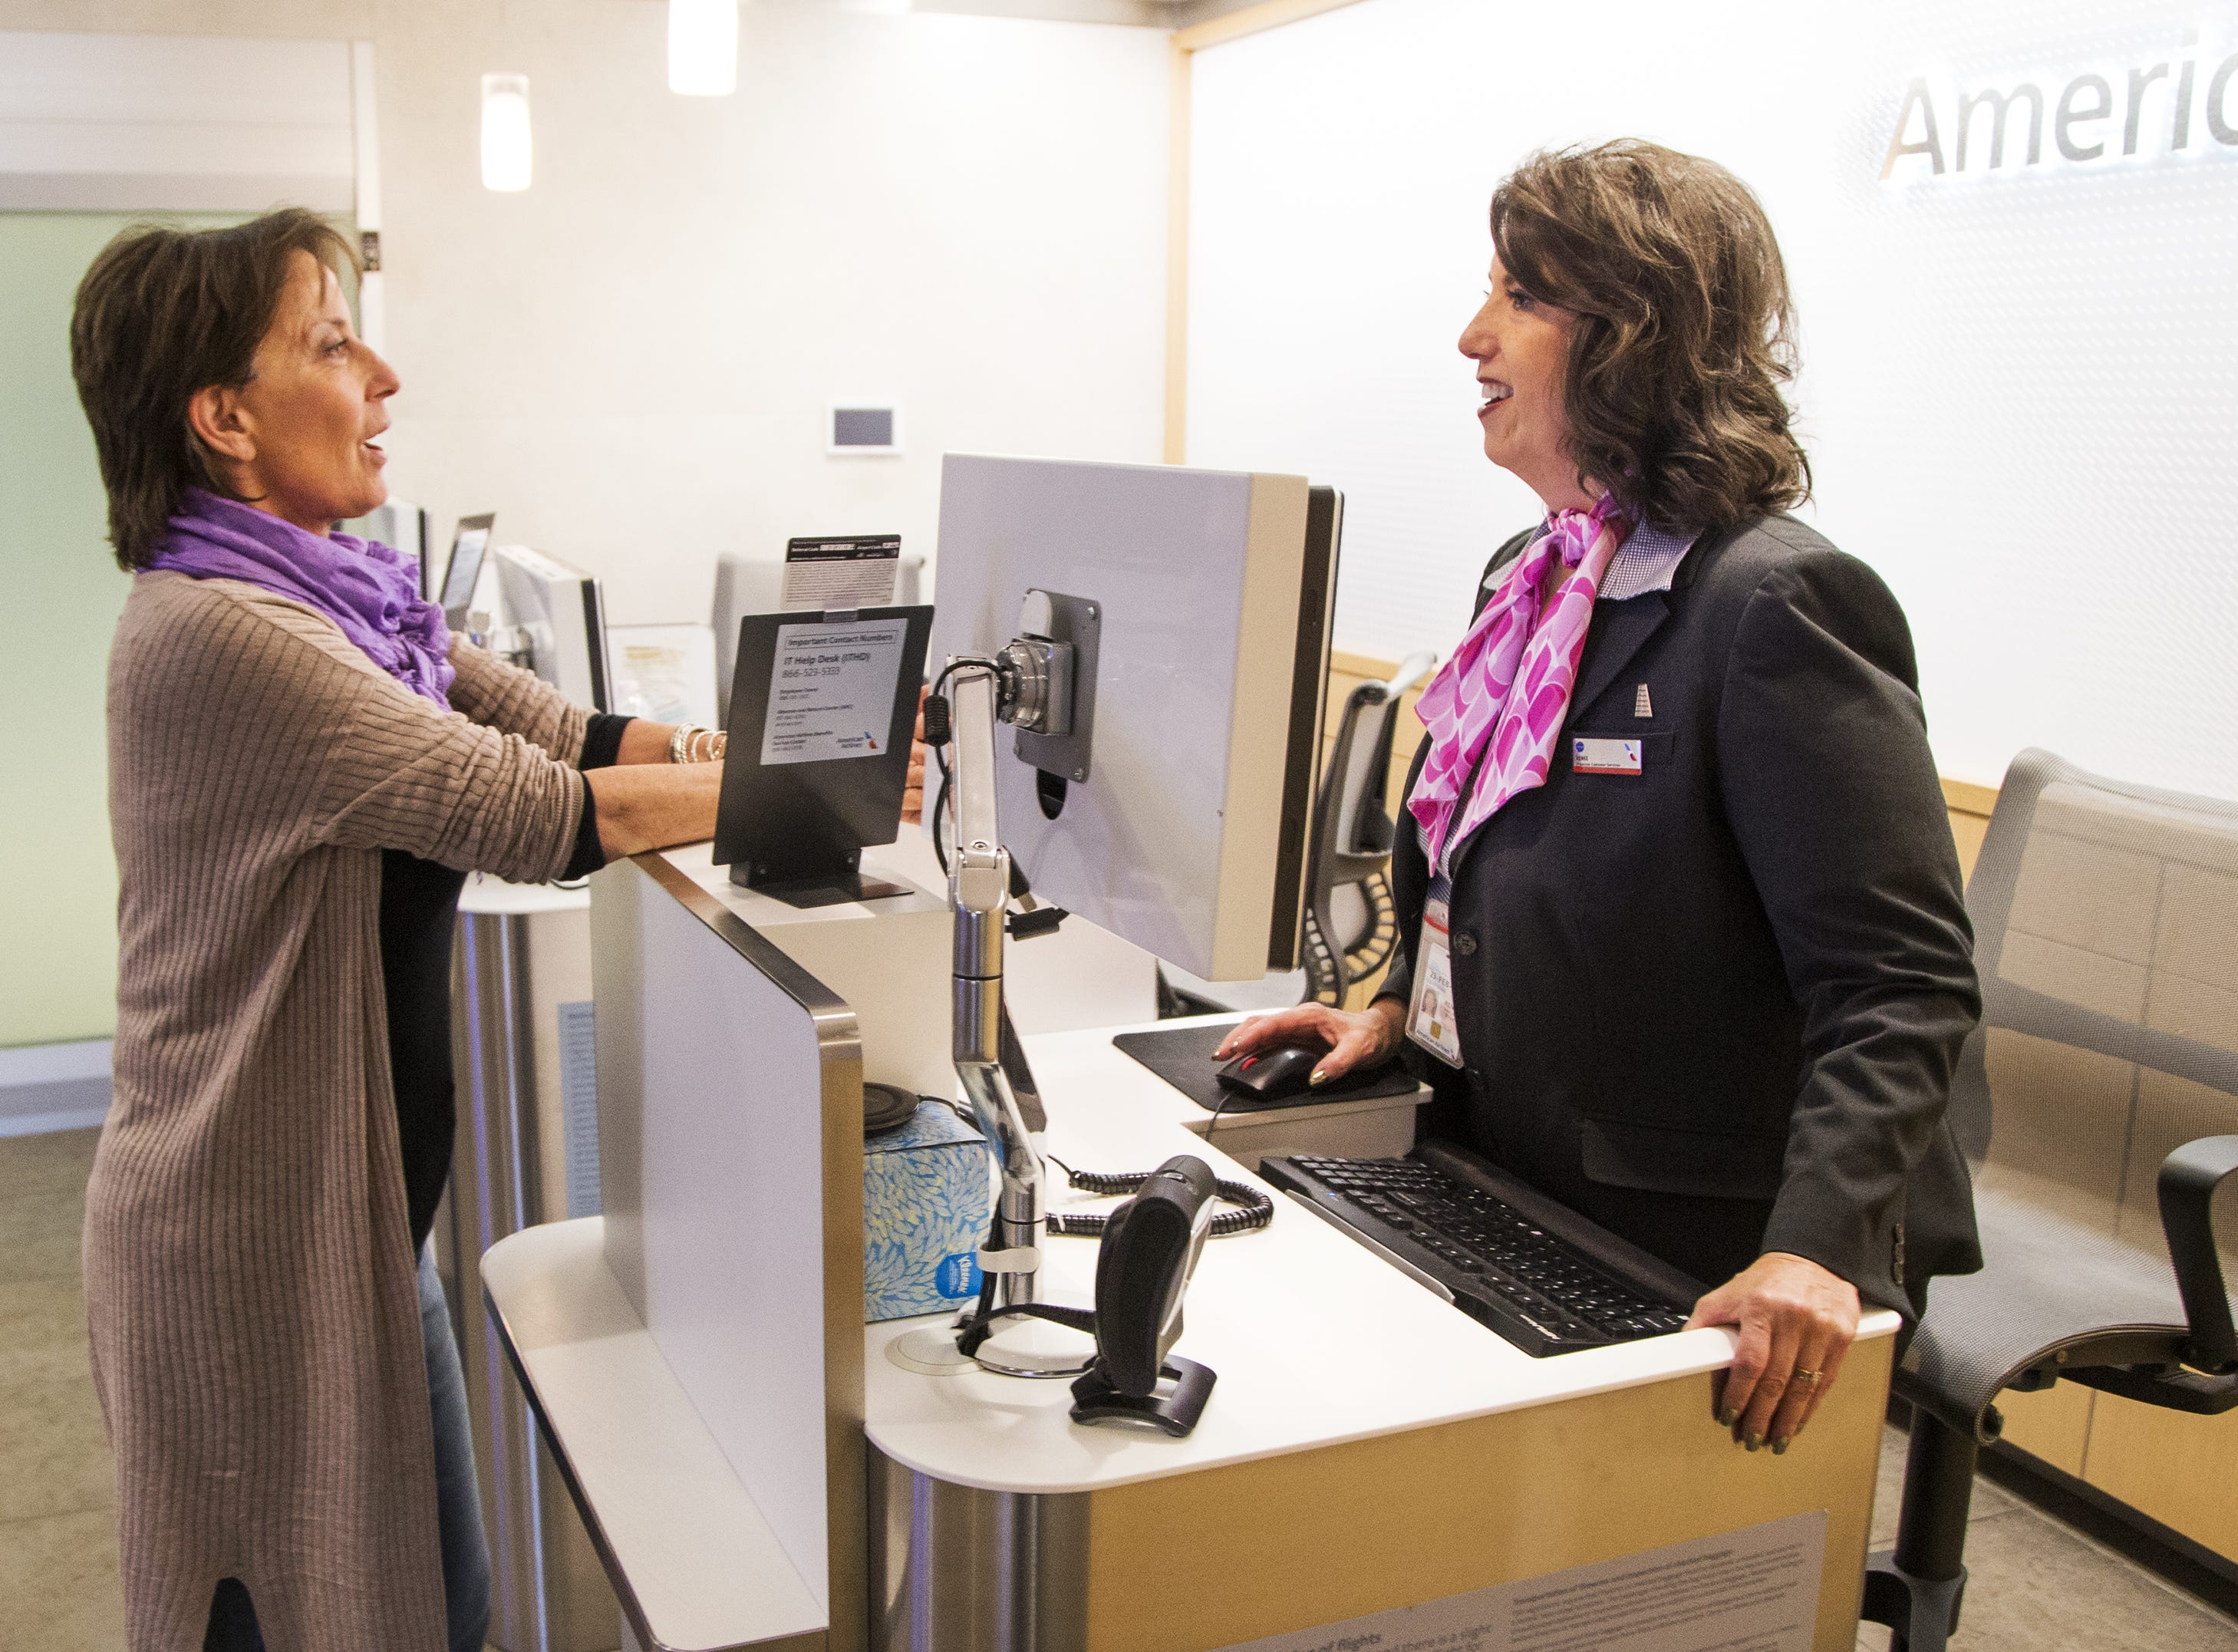 Customer Monica King of Morro Bay, California, asks premium service customer representative Renee Seavey, right, a question at check-in desk of the American Airlines Admirals Club in Terminal 4 at Sky Harbor International Airport, Wednesday, October 31, 2018.